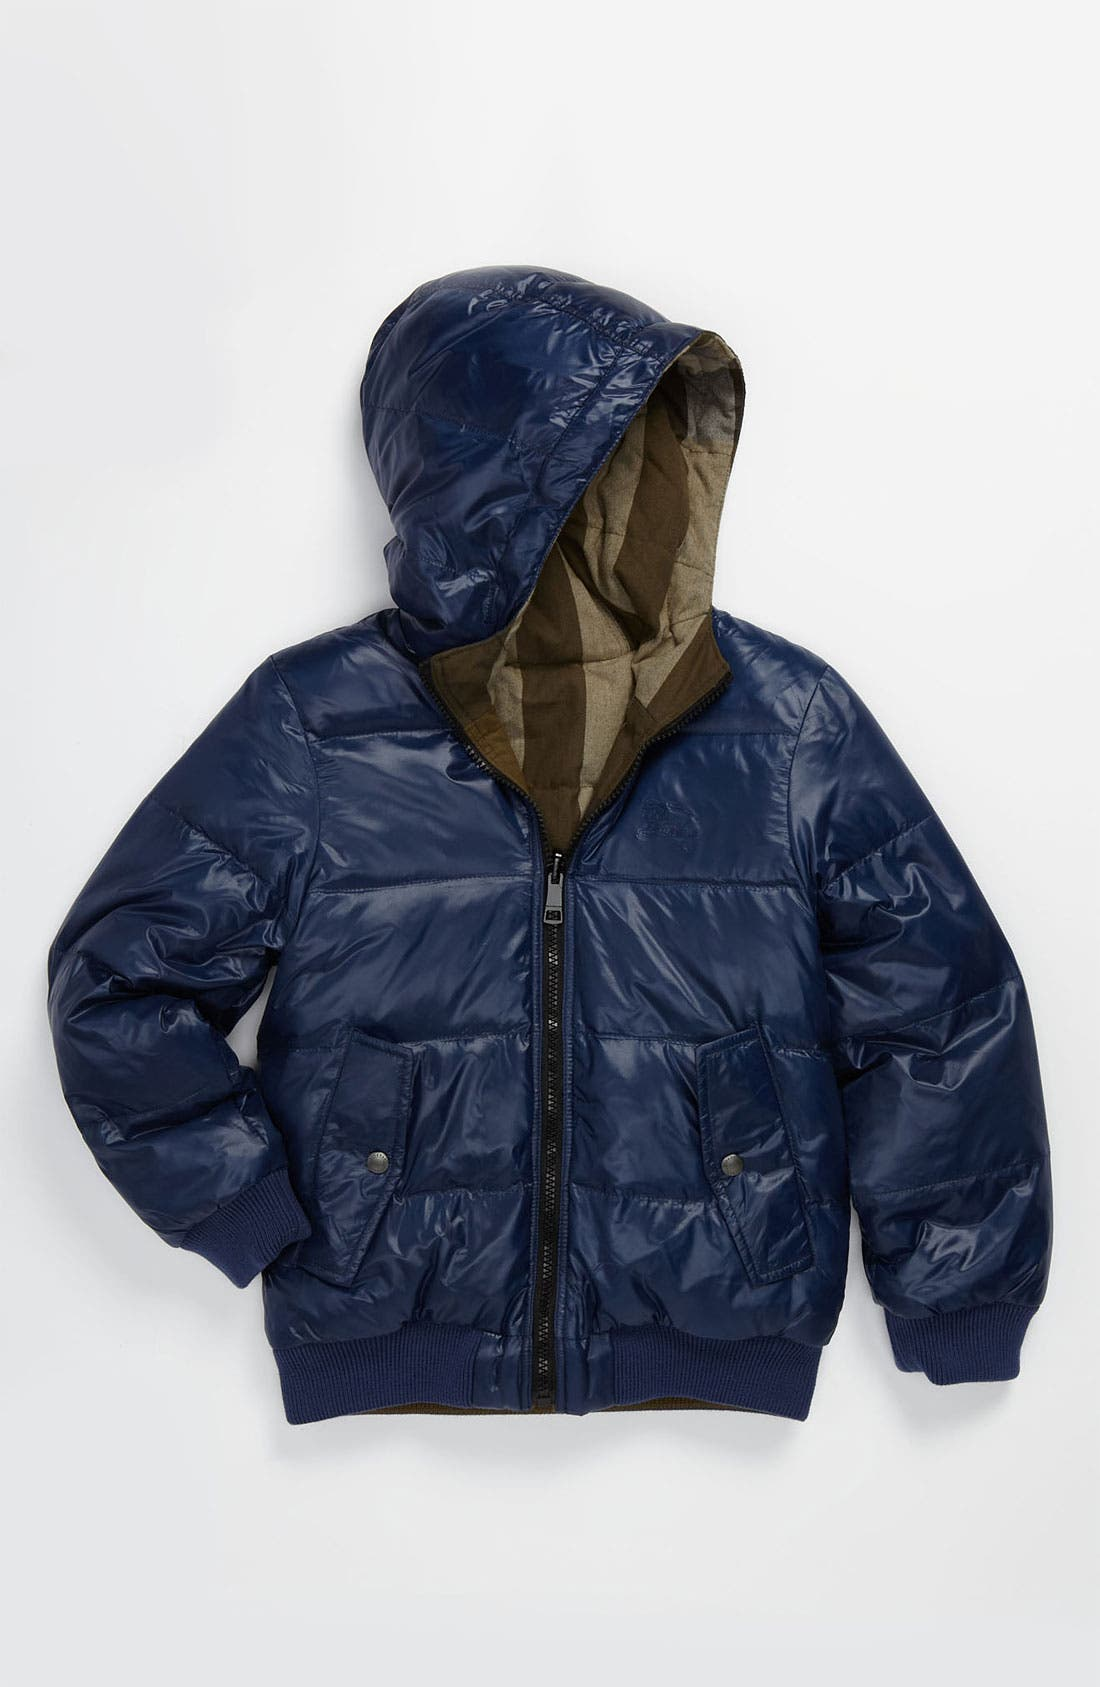 Alternate Image 1 Selected - Burberry Reversible Down Puffer Jacket (Little Girls & Big Girls)